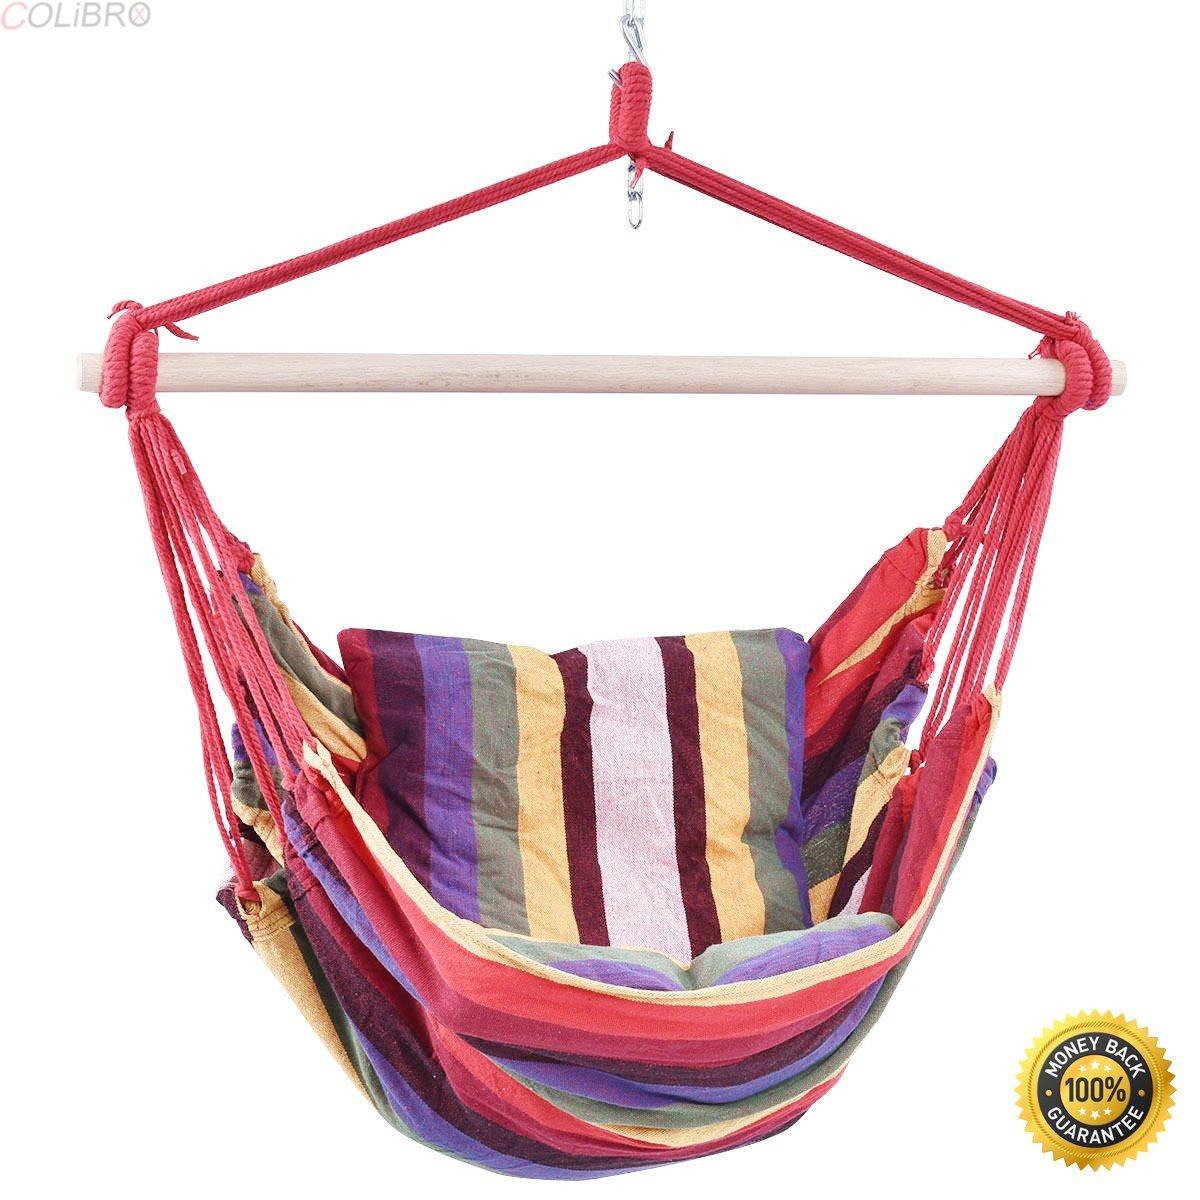 COLIBROX--2PCS Red Deluxe Hammock Rope Chair Patio Porch Yard Tree Hanging Air Swing patio,Swing Loveseat Hammock,swing chair outdoor,hammock swing chair,lowes porch swing,portable folding hammock